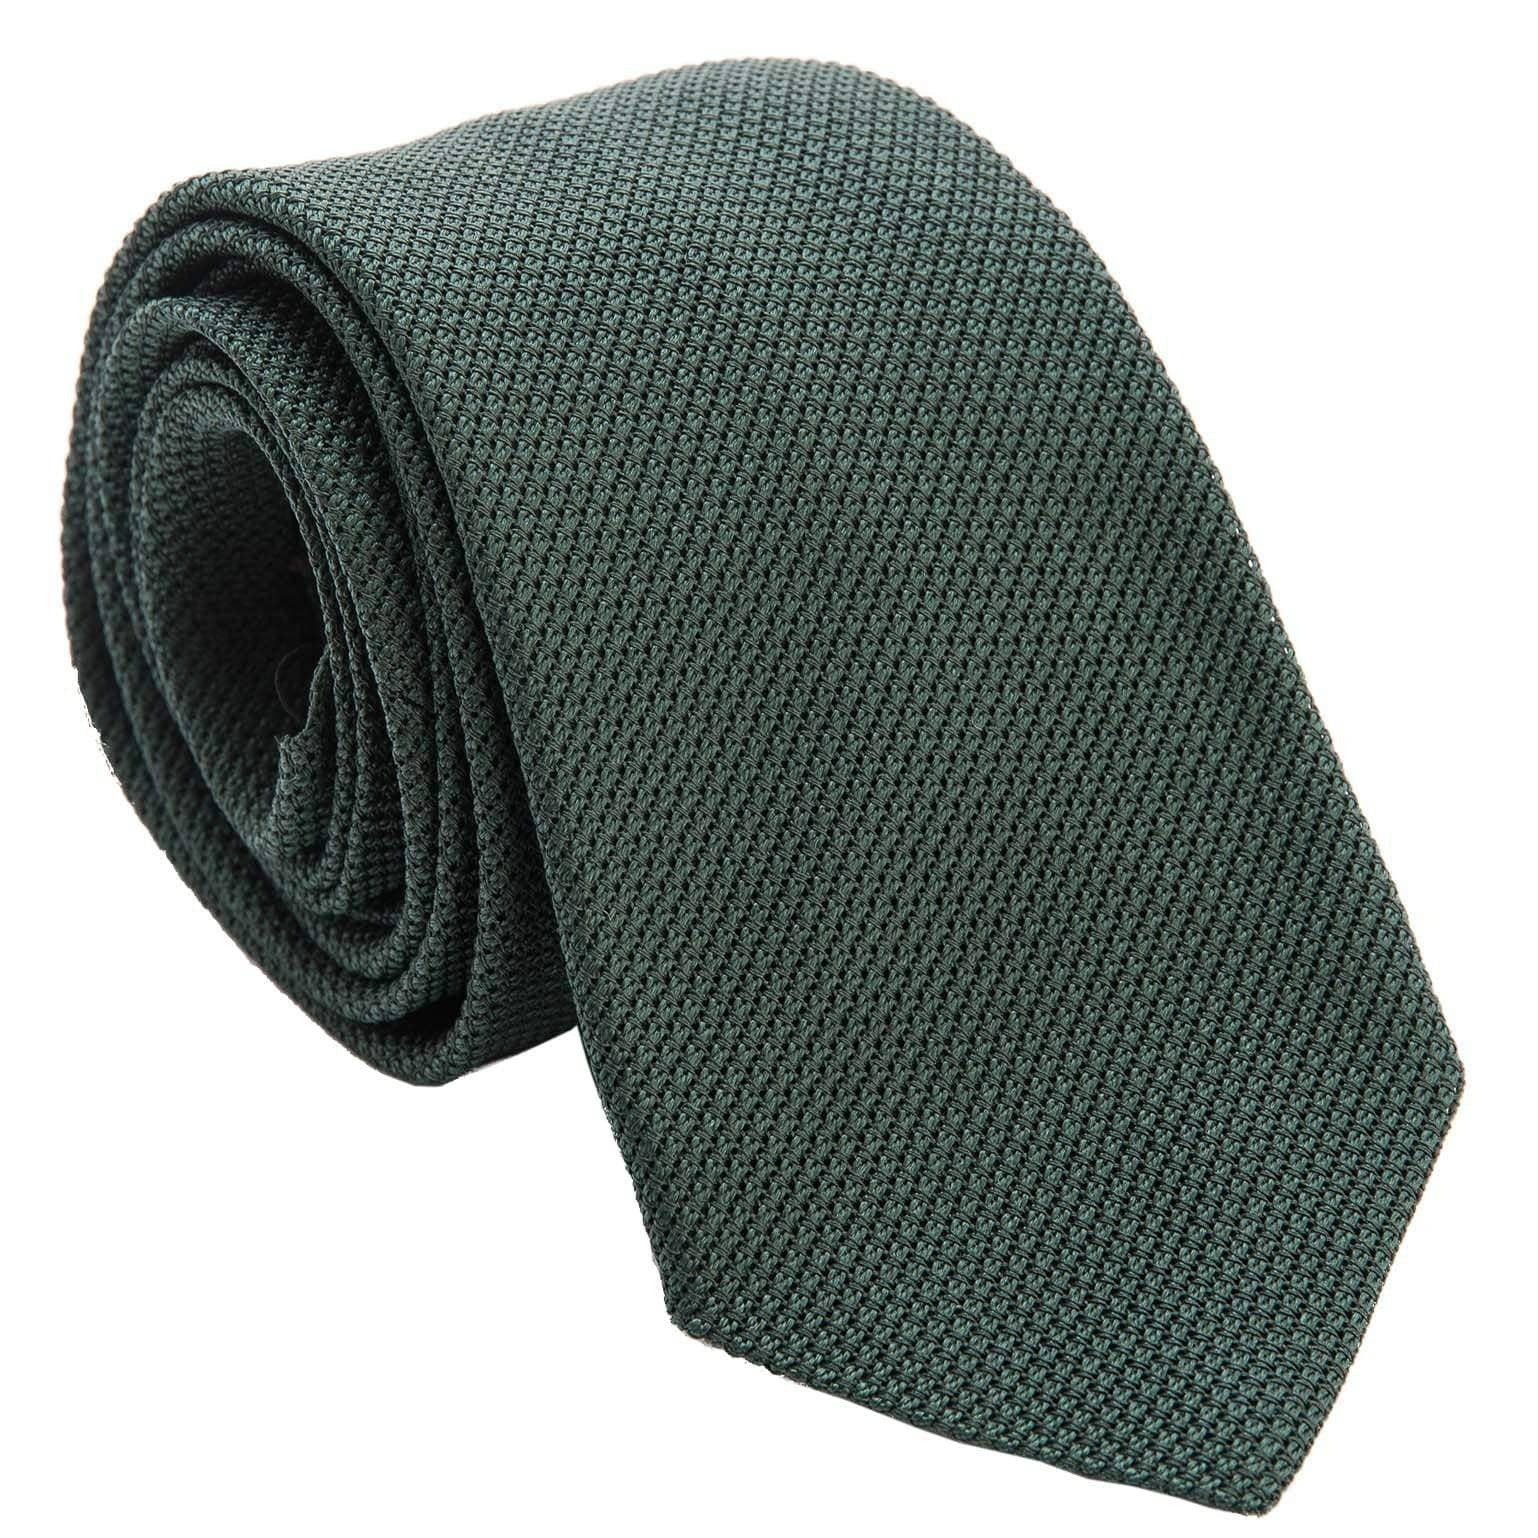 Italian Extra Long Grenadine Silk Tie - Forest Green